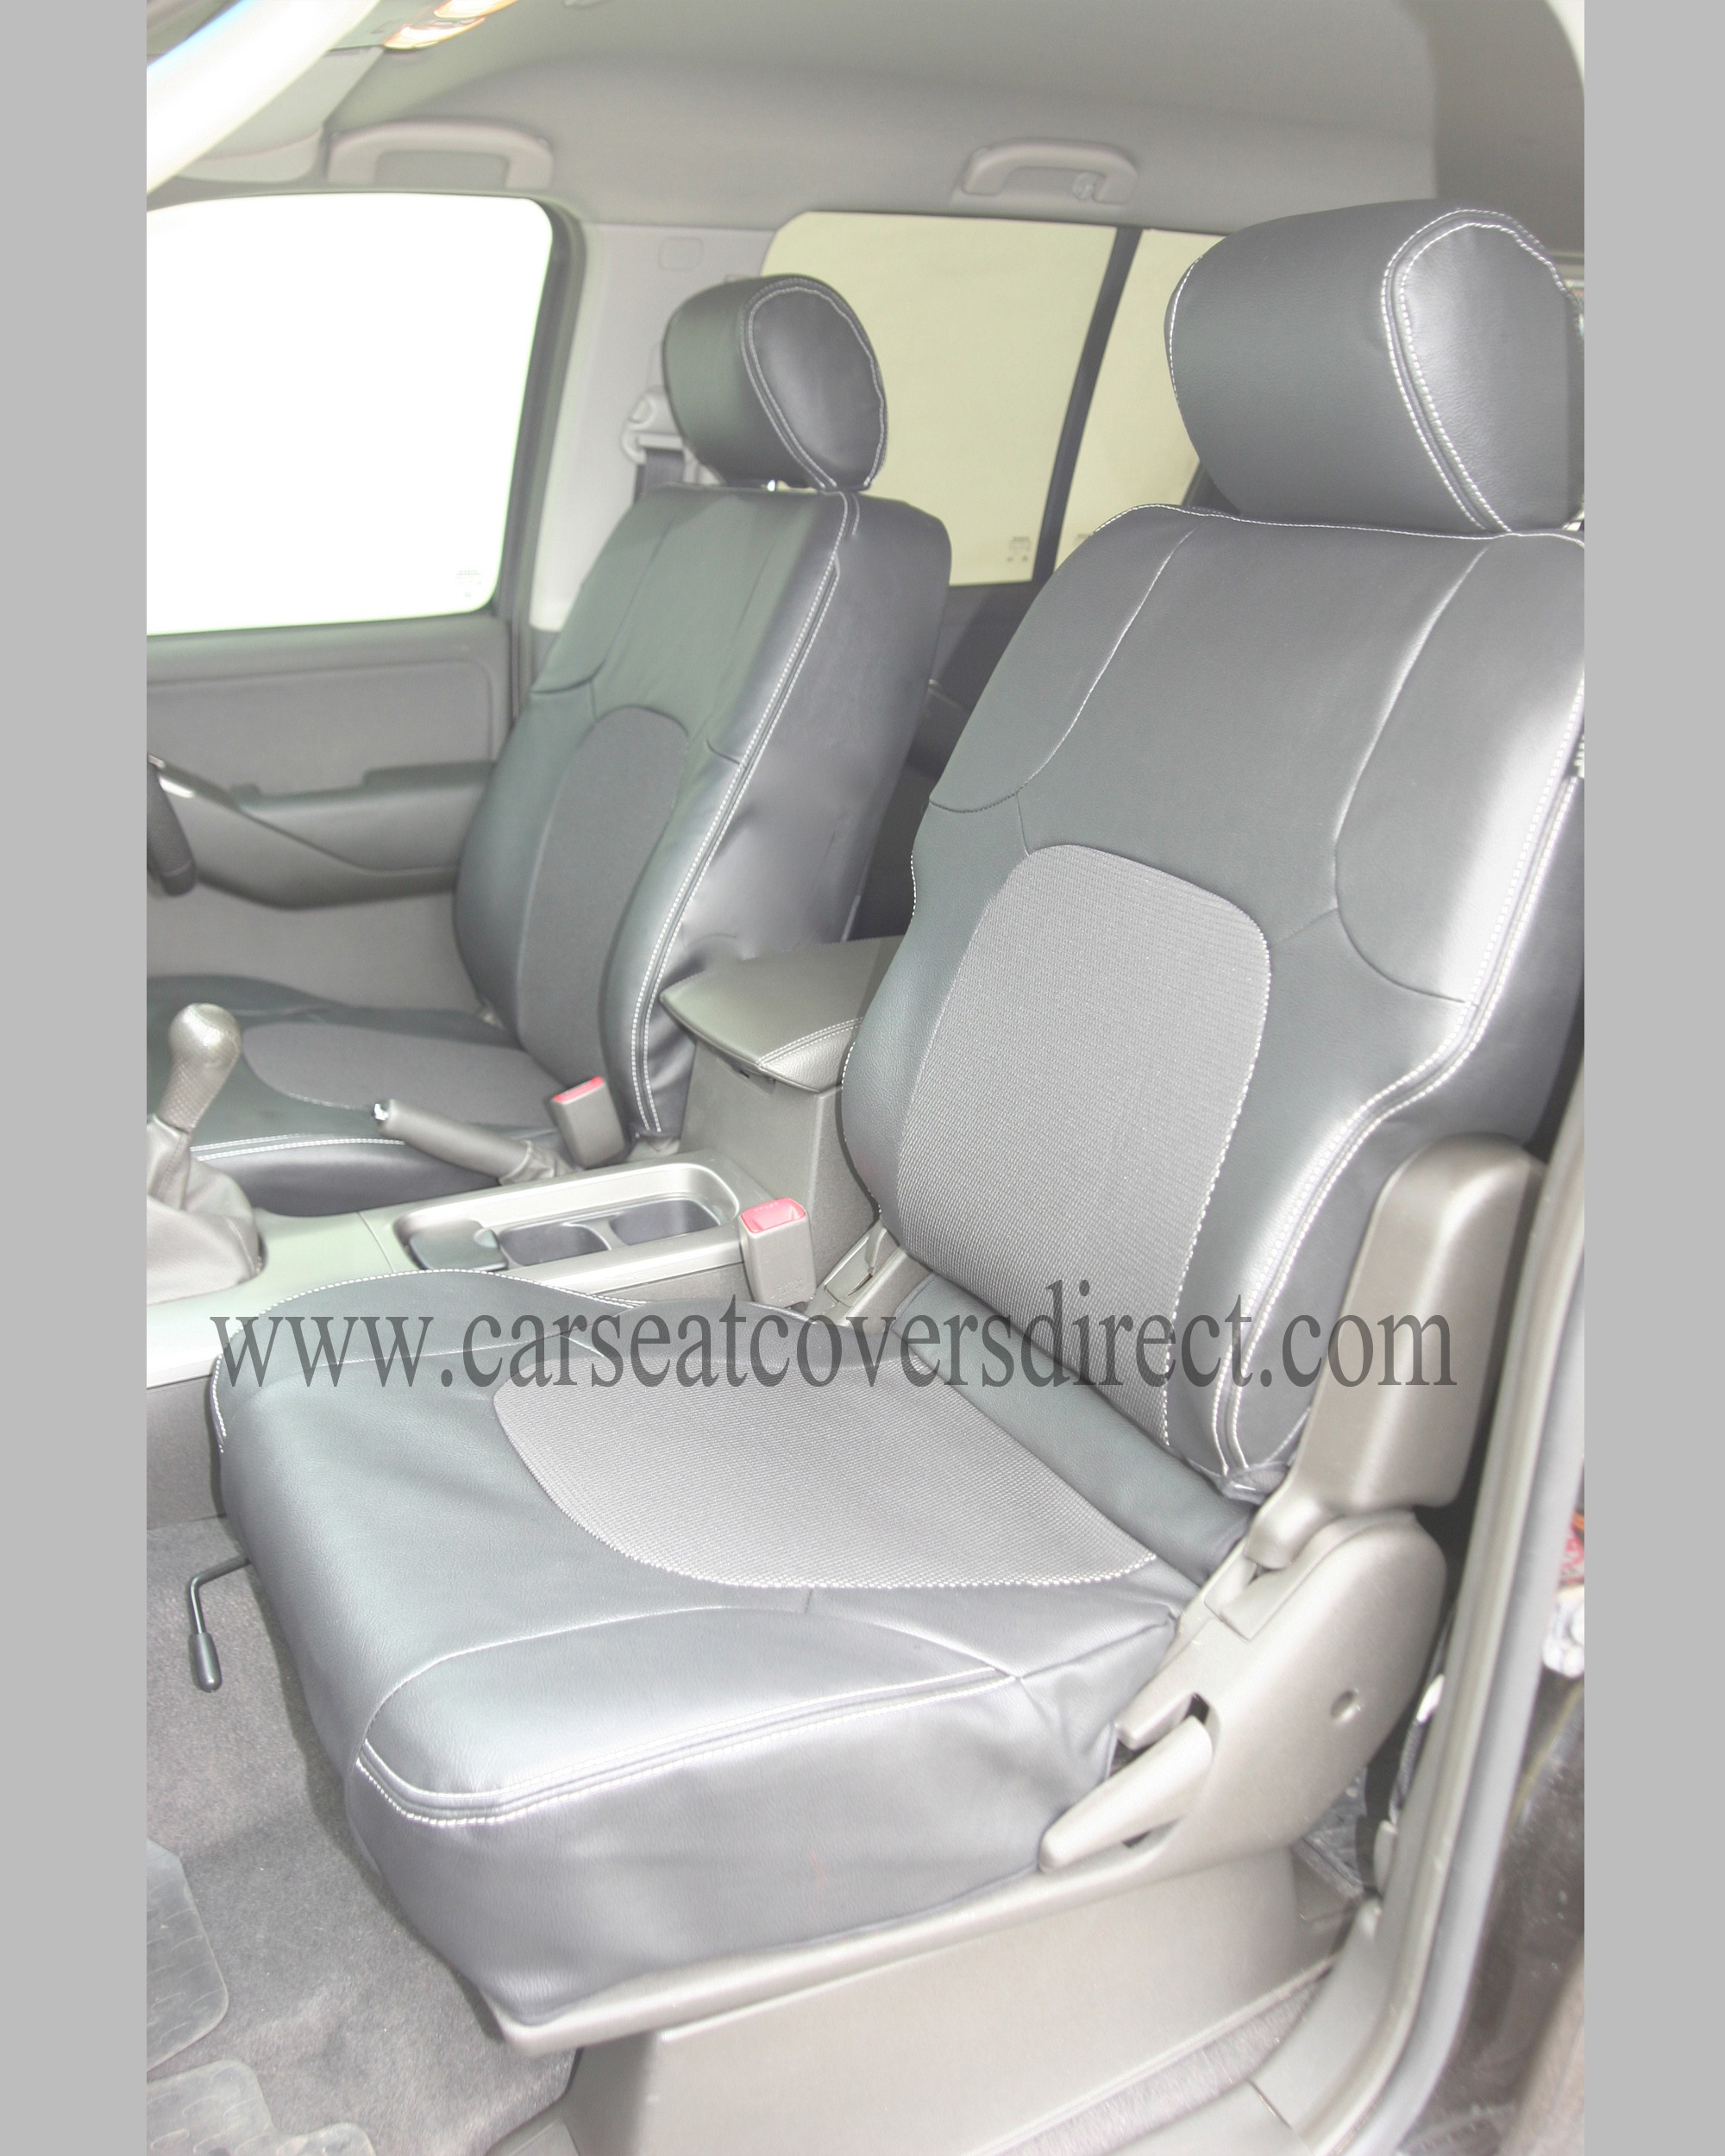 Captivating NISSAN PATHFINDER Family Pack Seat Covers 5 Seats Including Leather  Stitching And Logos.